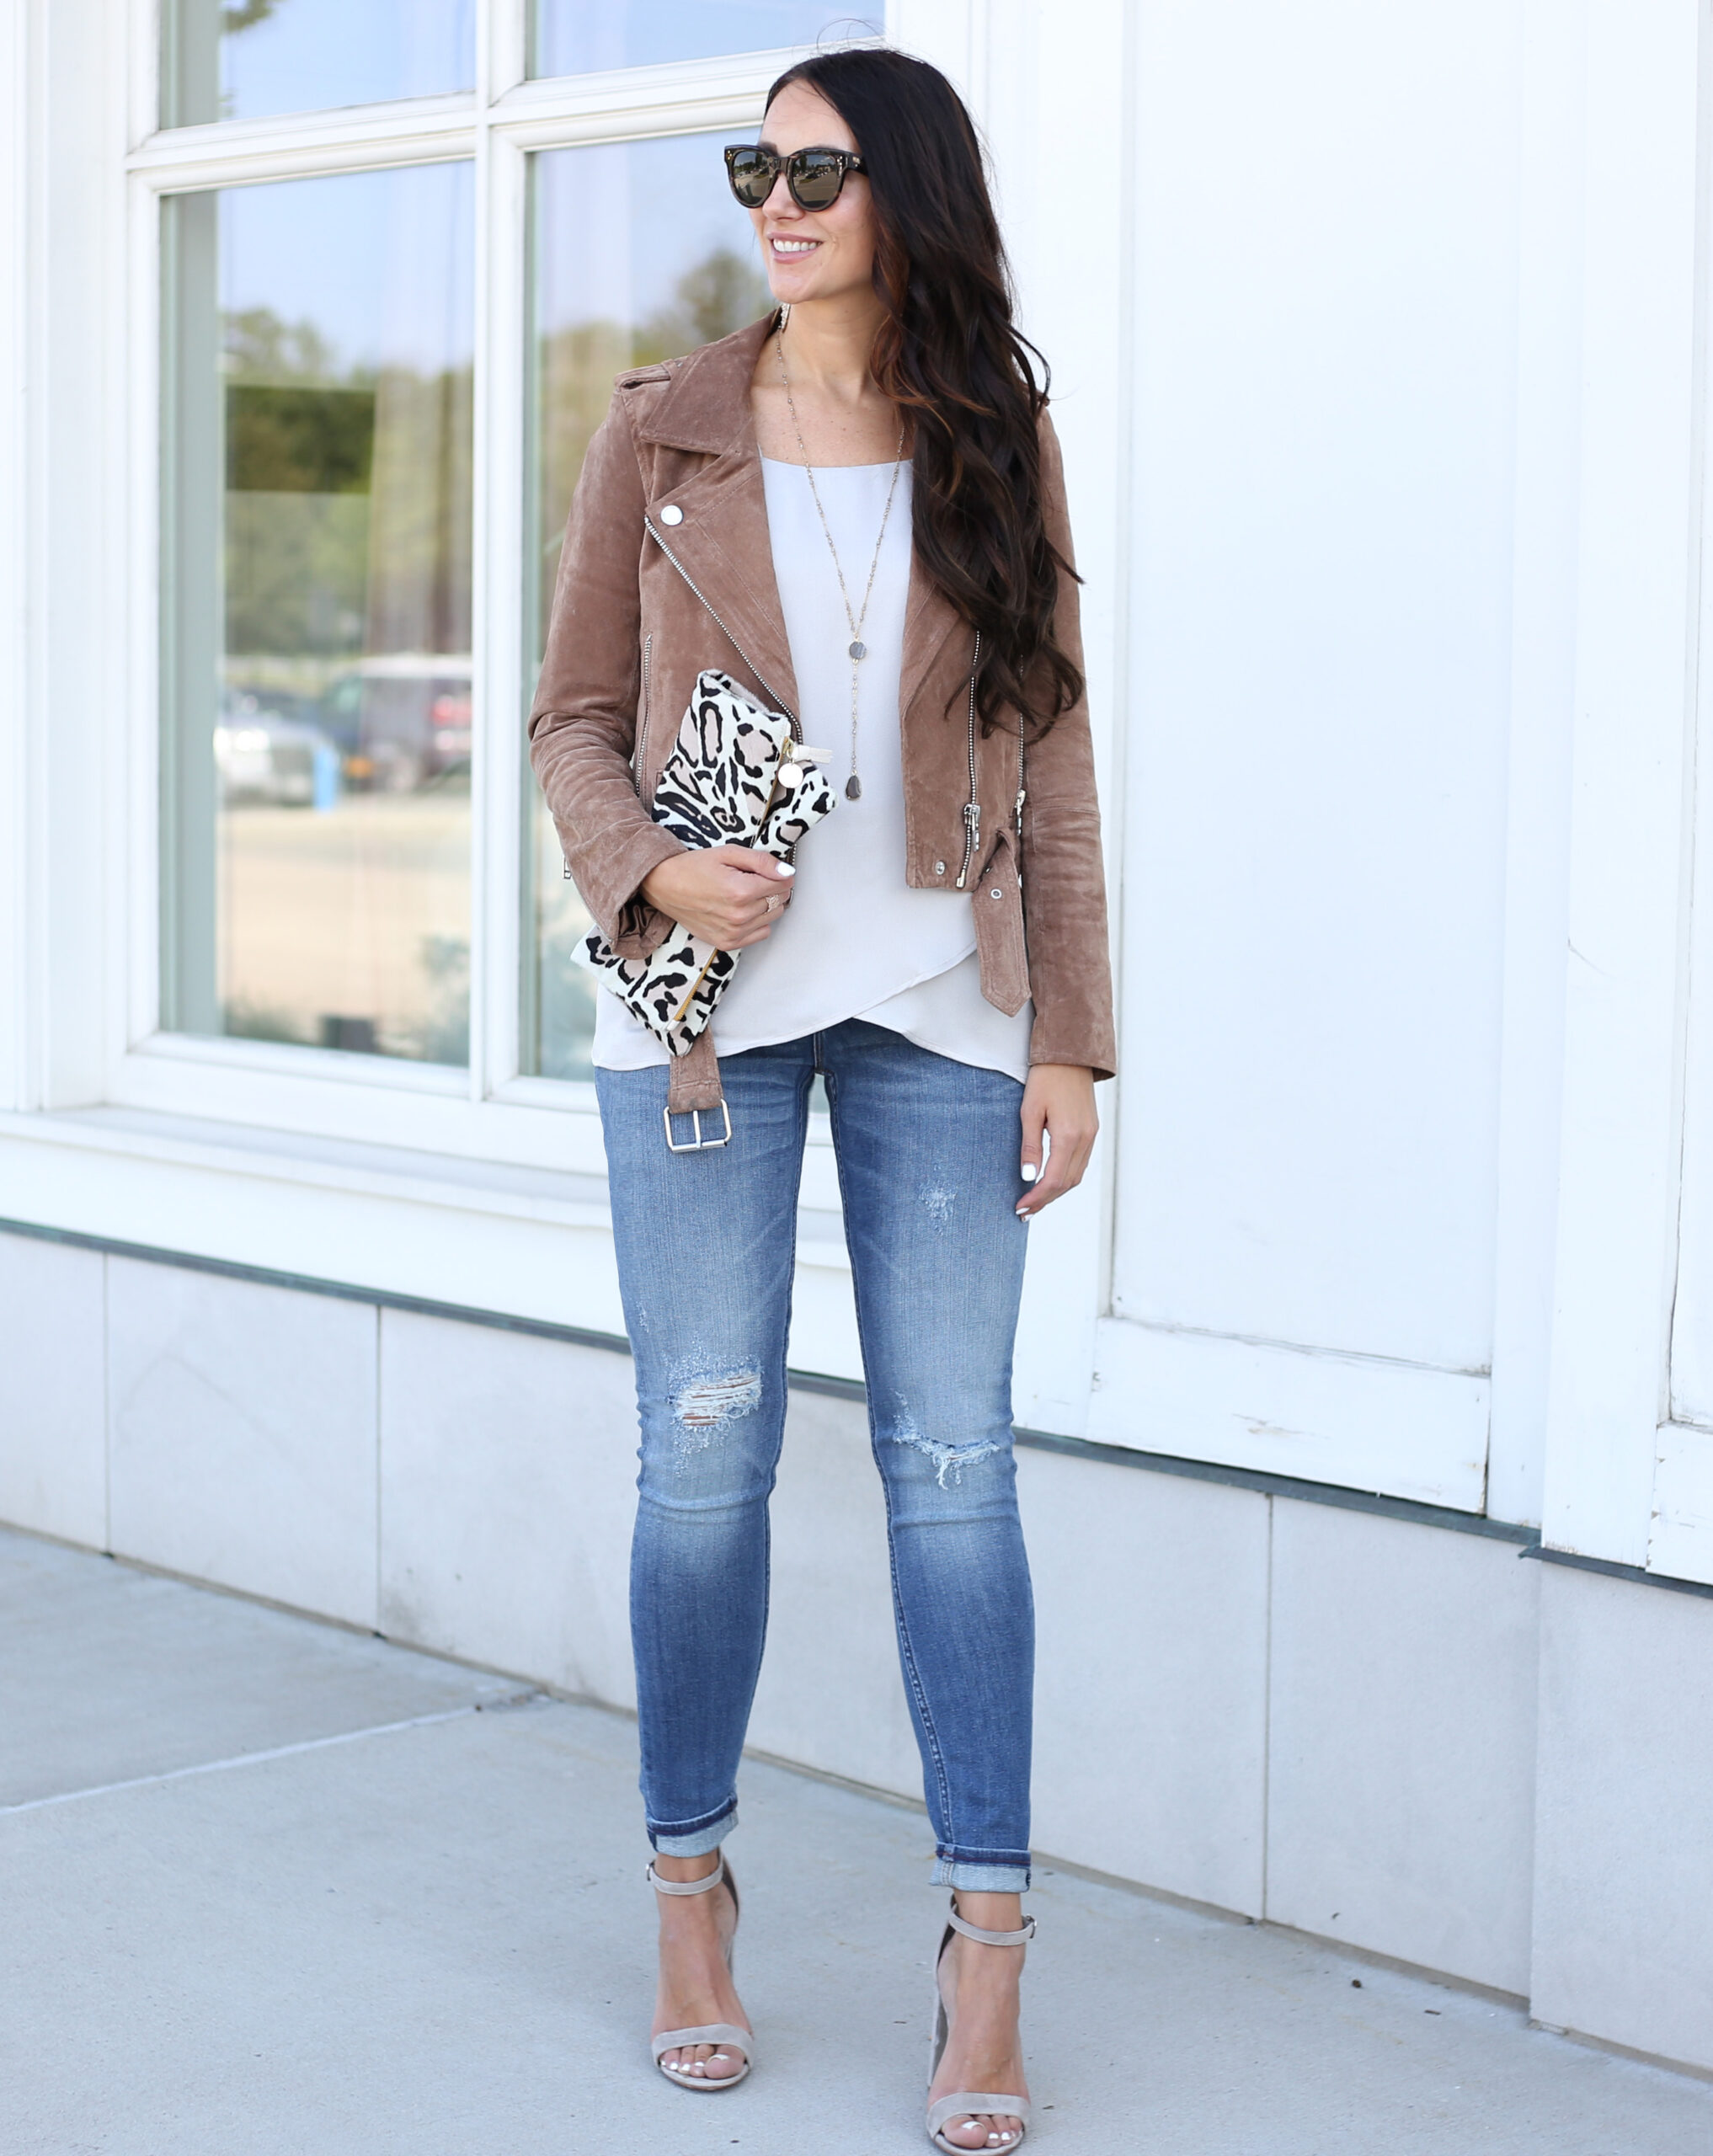 blogger Anna Monteiro of blushing rose style blog wearing blanknyc suede moto jacket and skinny jeans from nordstrom in fall wardrobe update